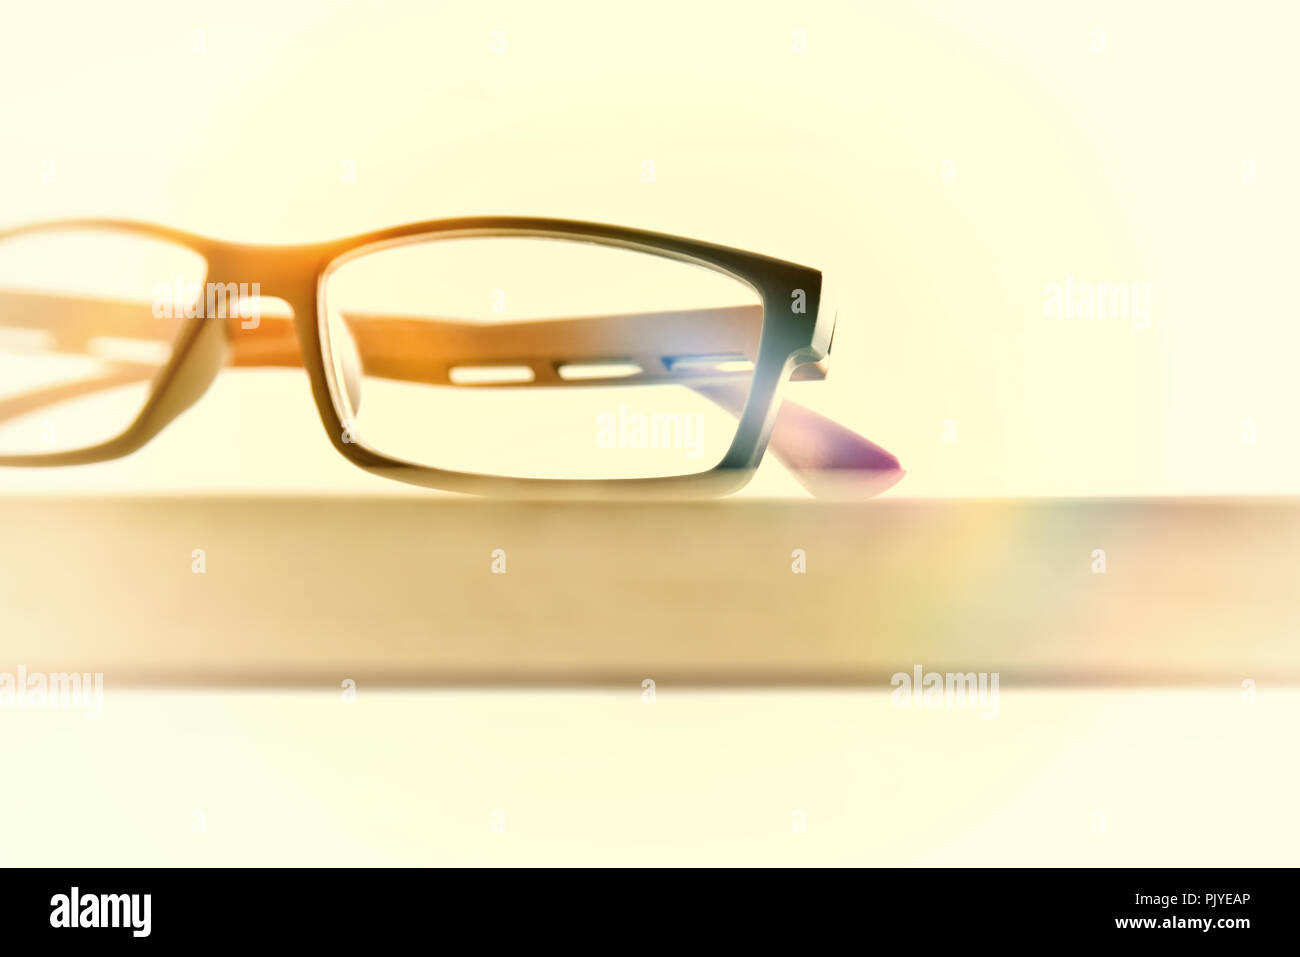 Eyewear on wood table front view detail vintage. Front view. Horizontal composition - Stock Image